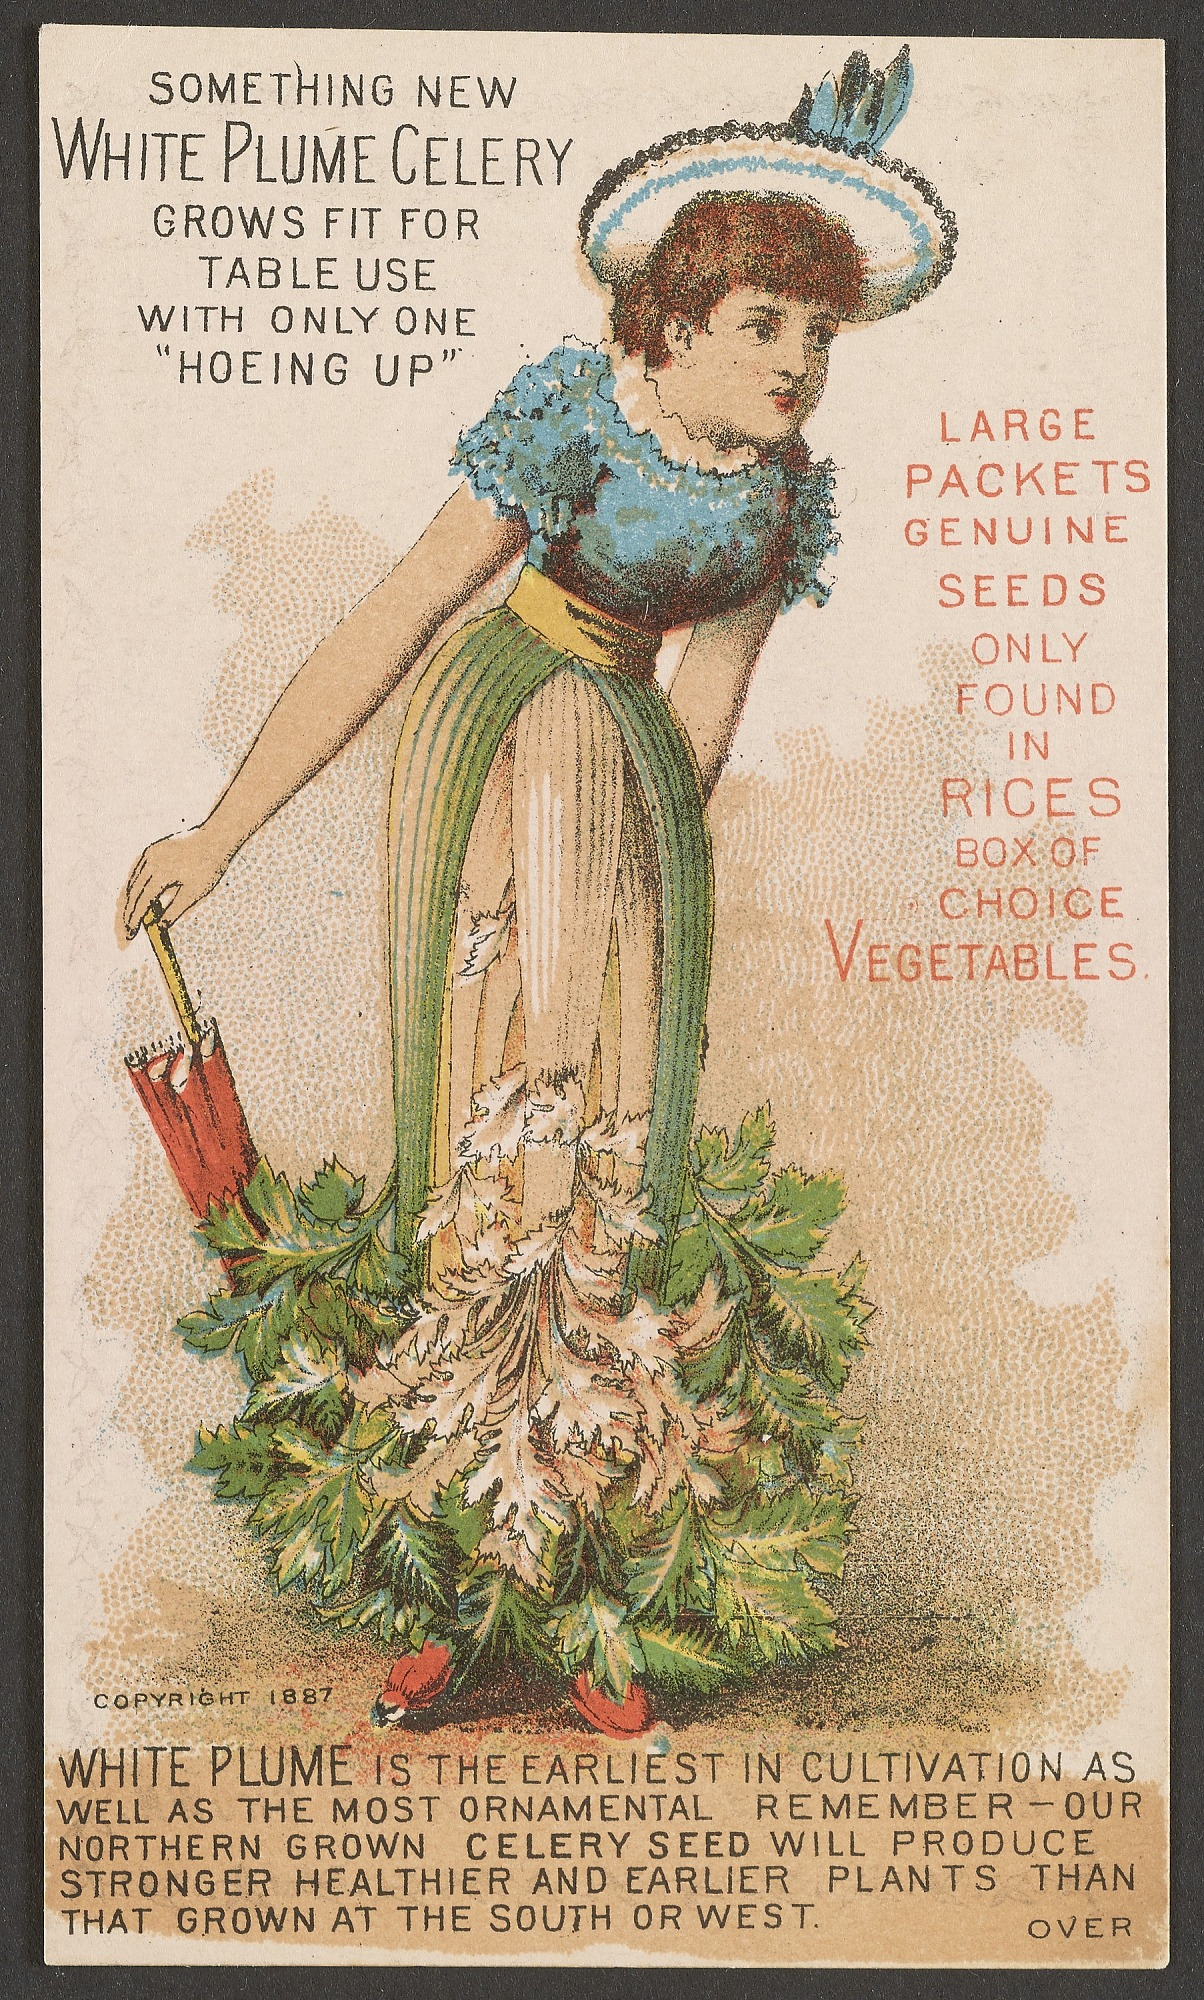 Celery Lady, Trade card, John B. Varick Co., Manchester, New Hampshire, 1885